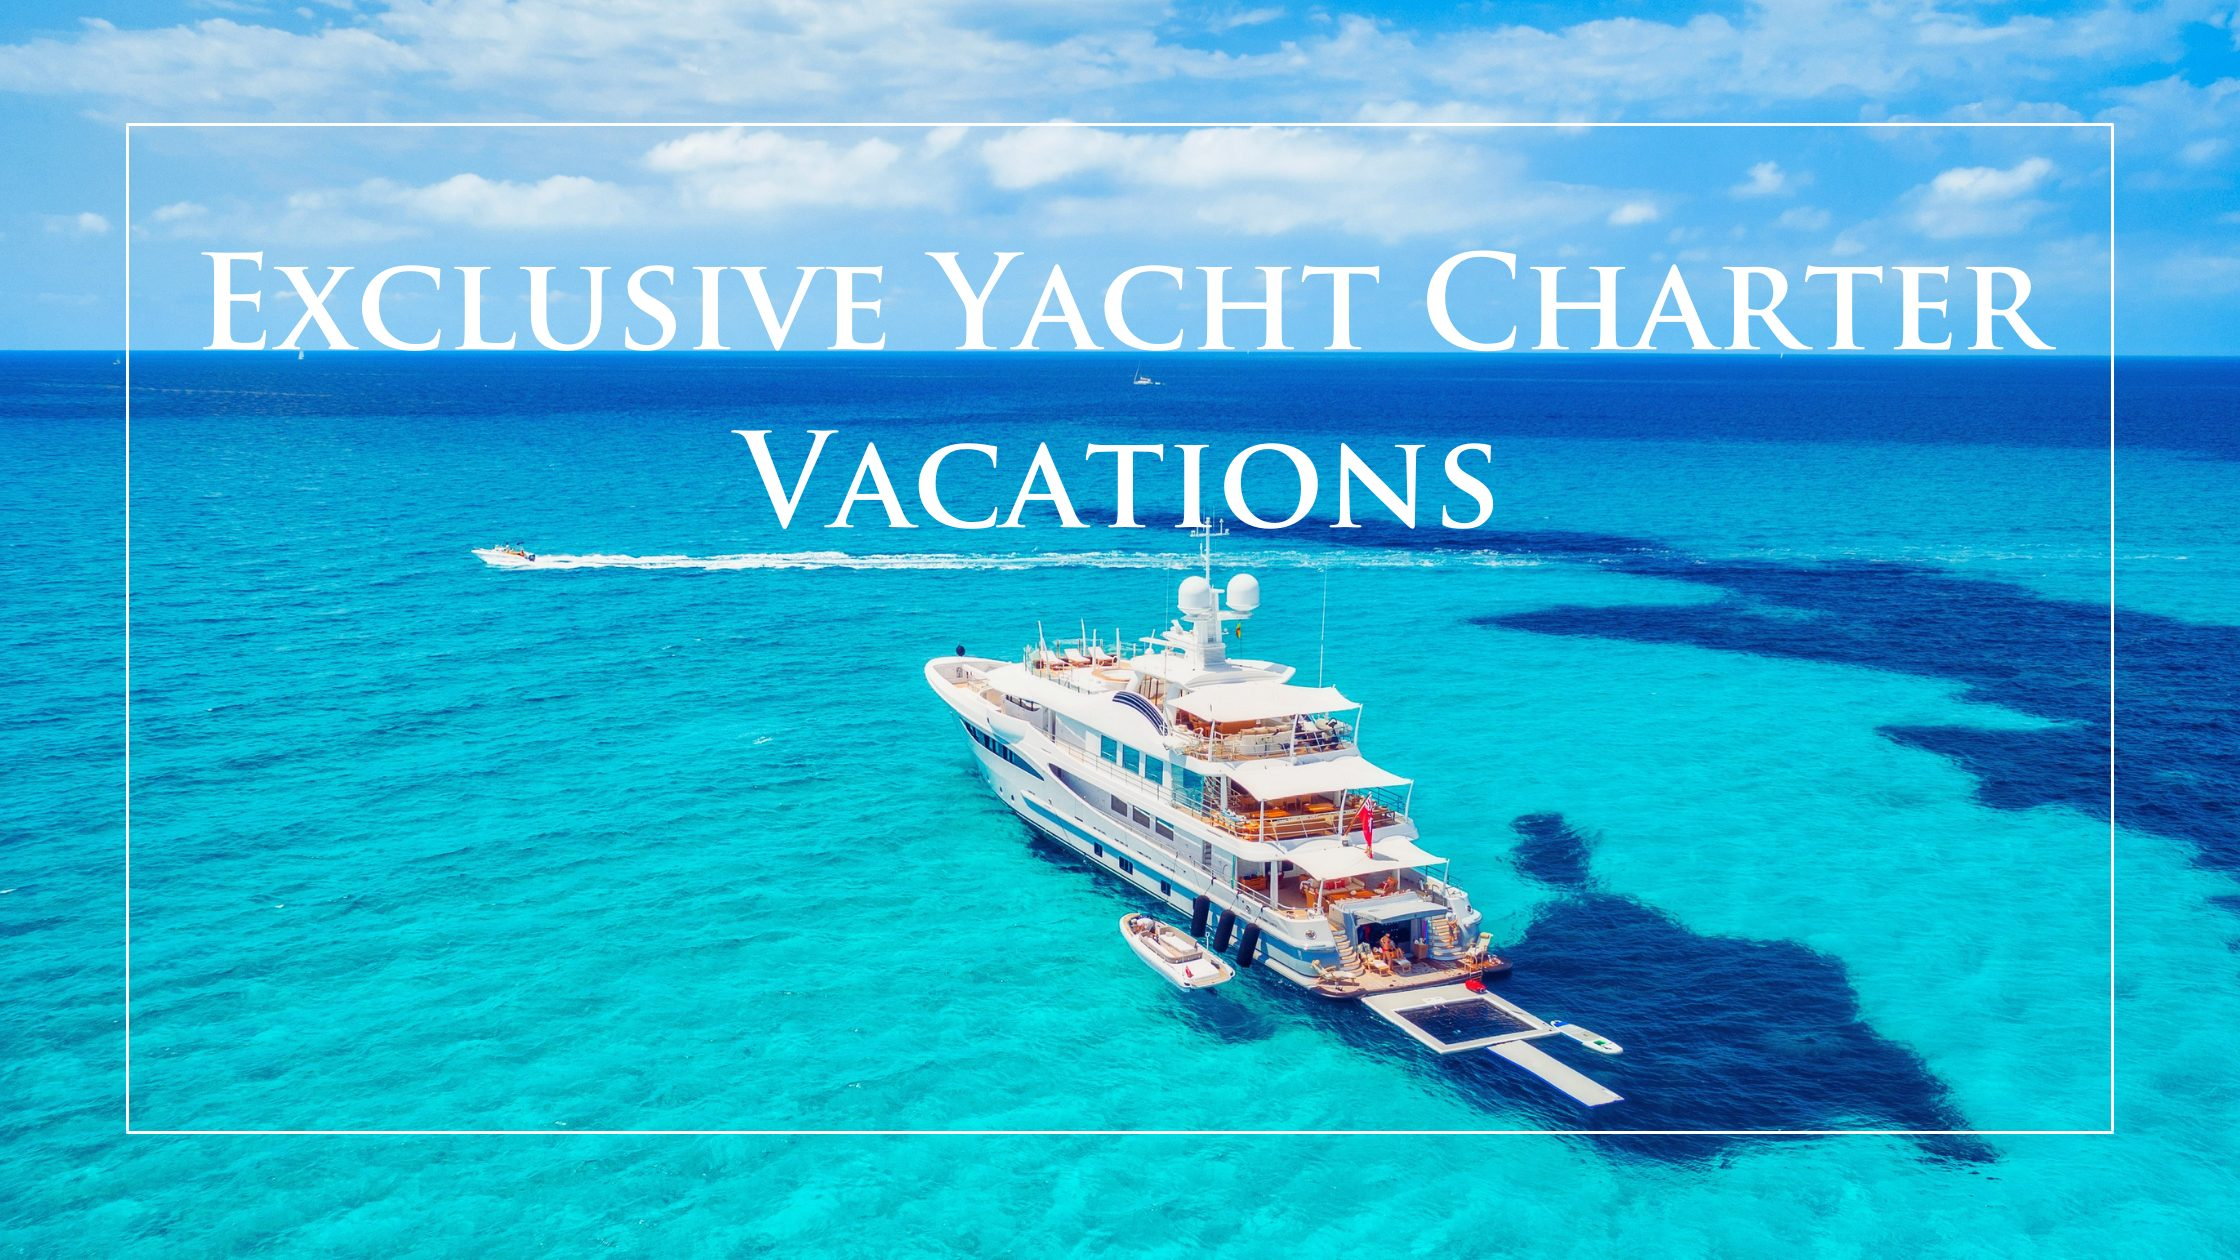 No Slow-down in Sight for Exclusive Yacht Charter Vacations